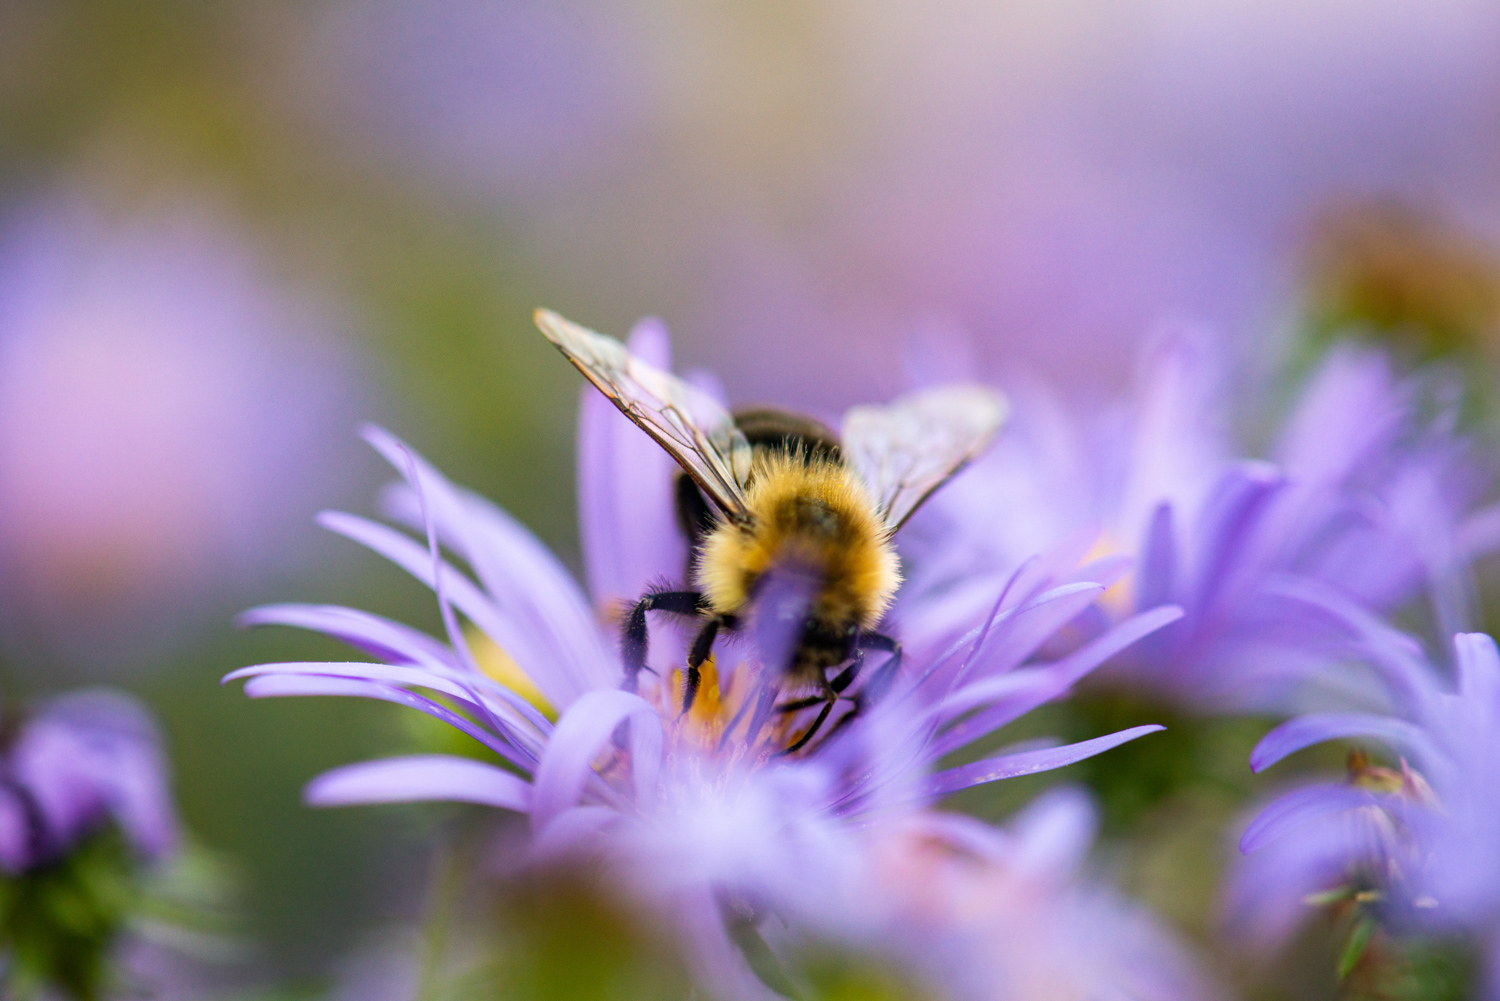 Color Photograph, Insect, Flower, Bumble Bee, Midwest, Interior Design, Wall Art